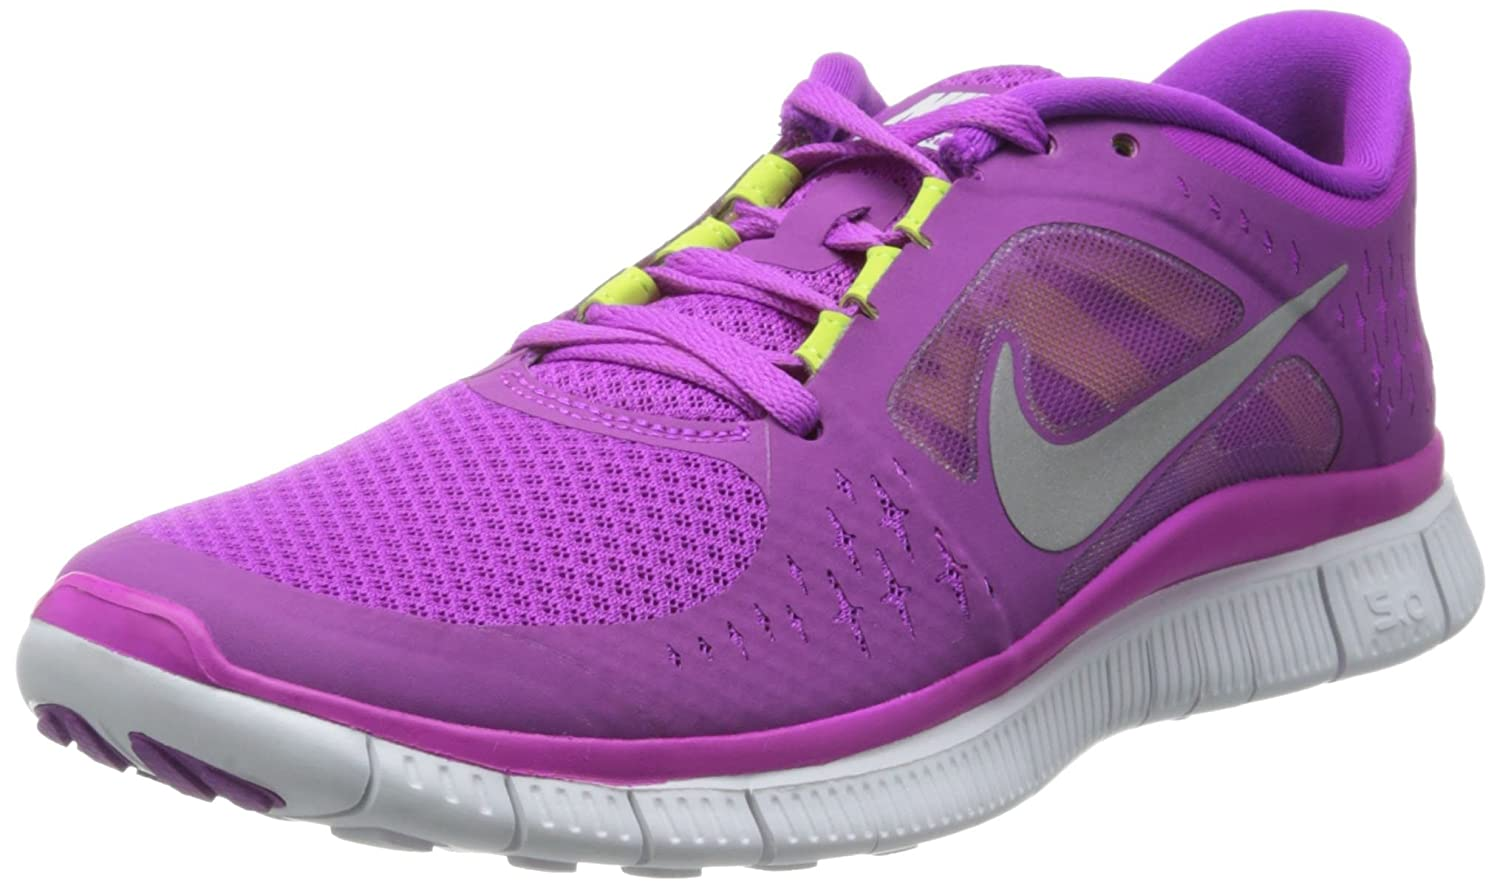 nike free run 5.0 women's training shoes with arch support